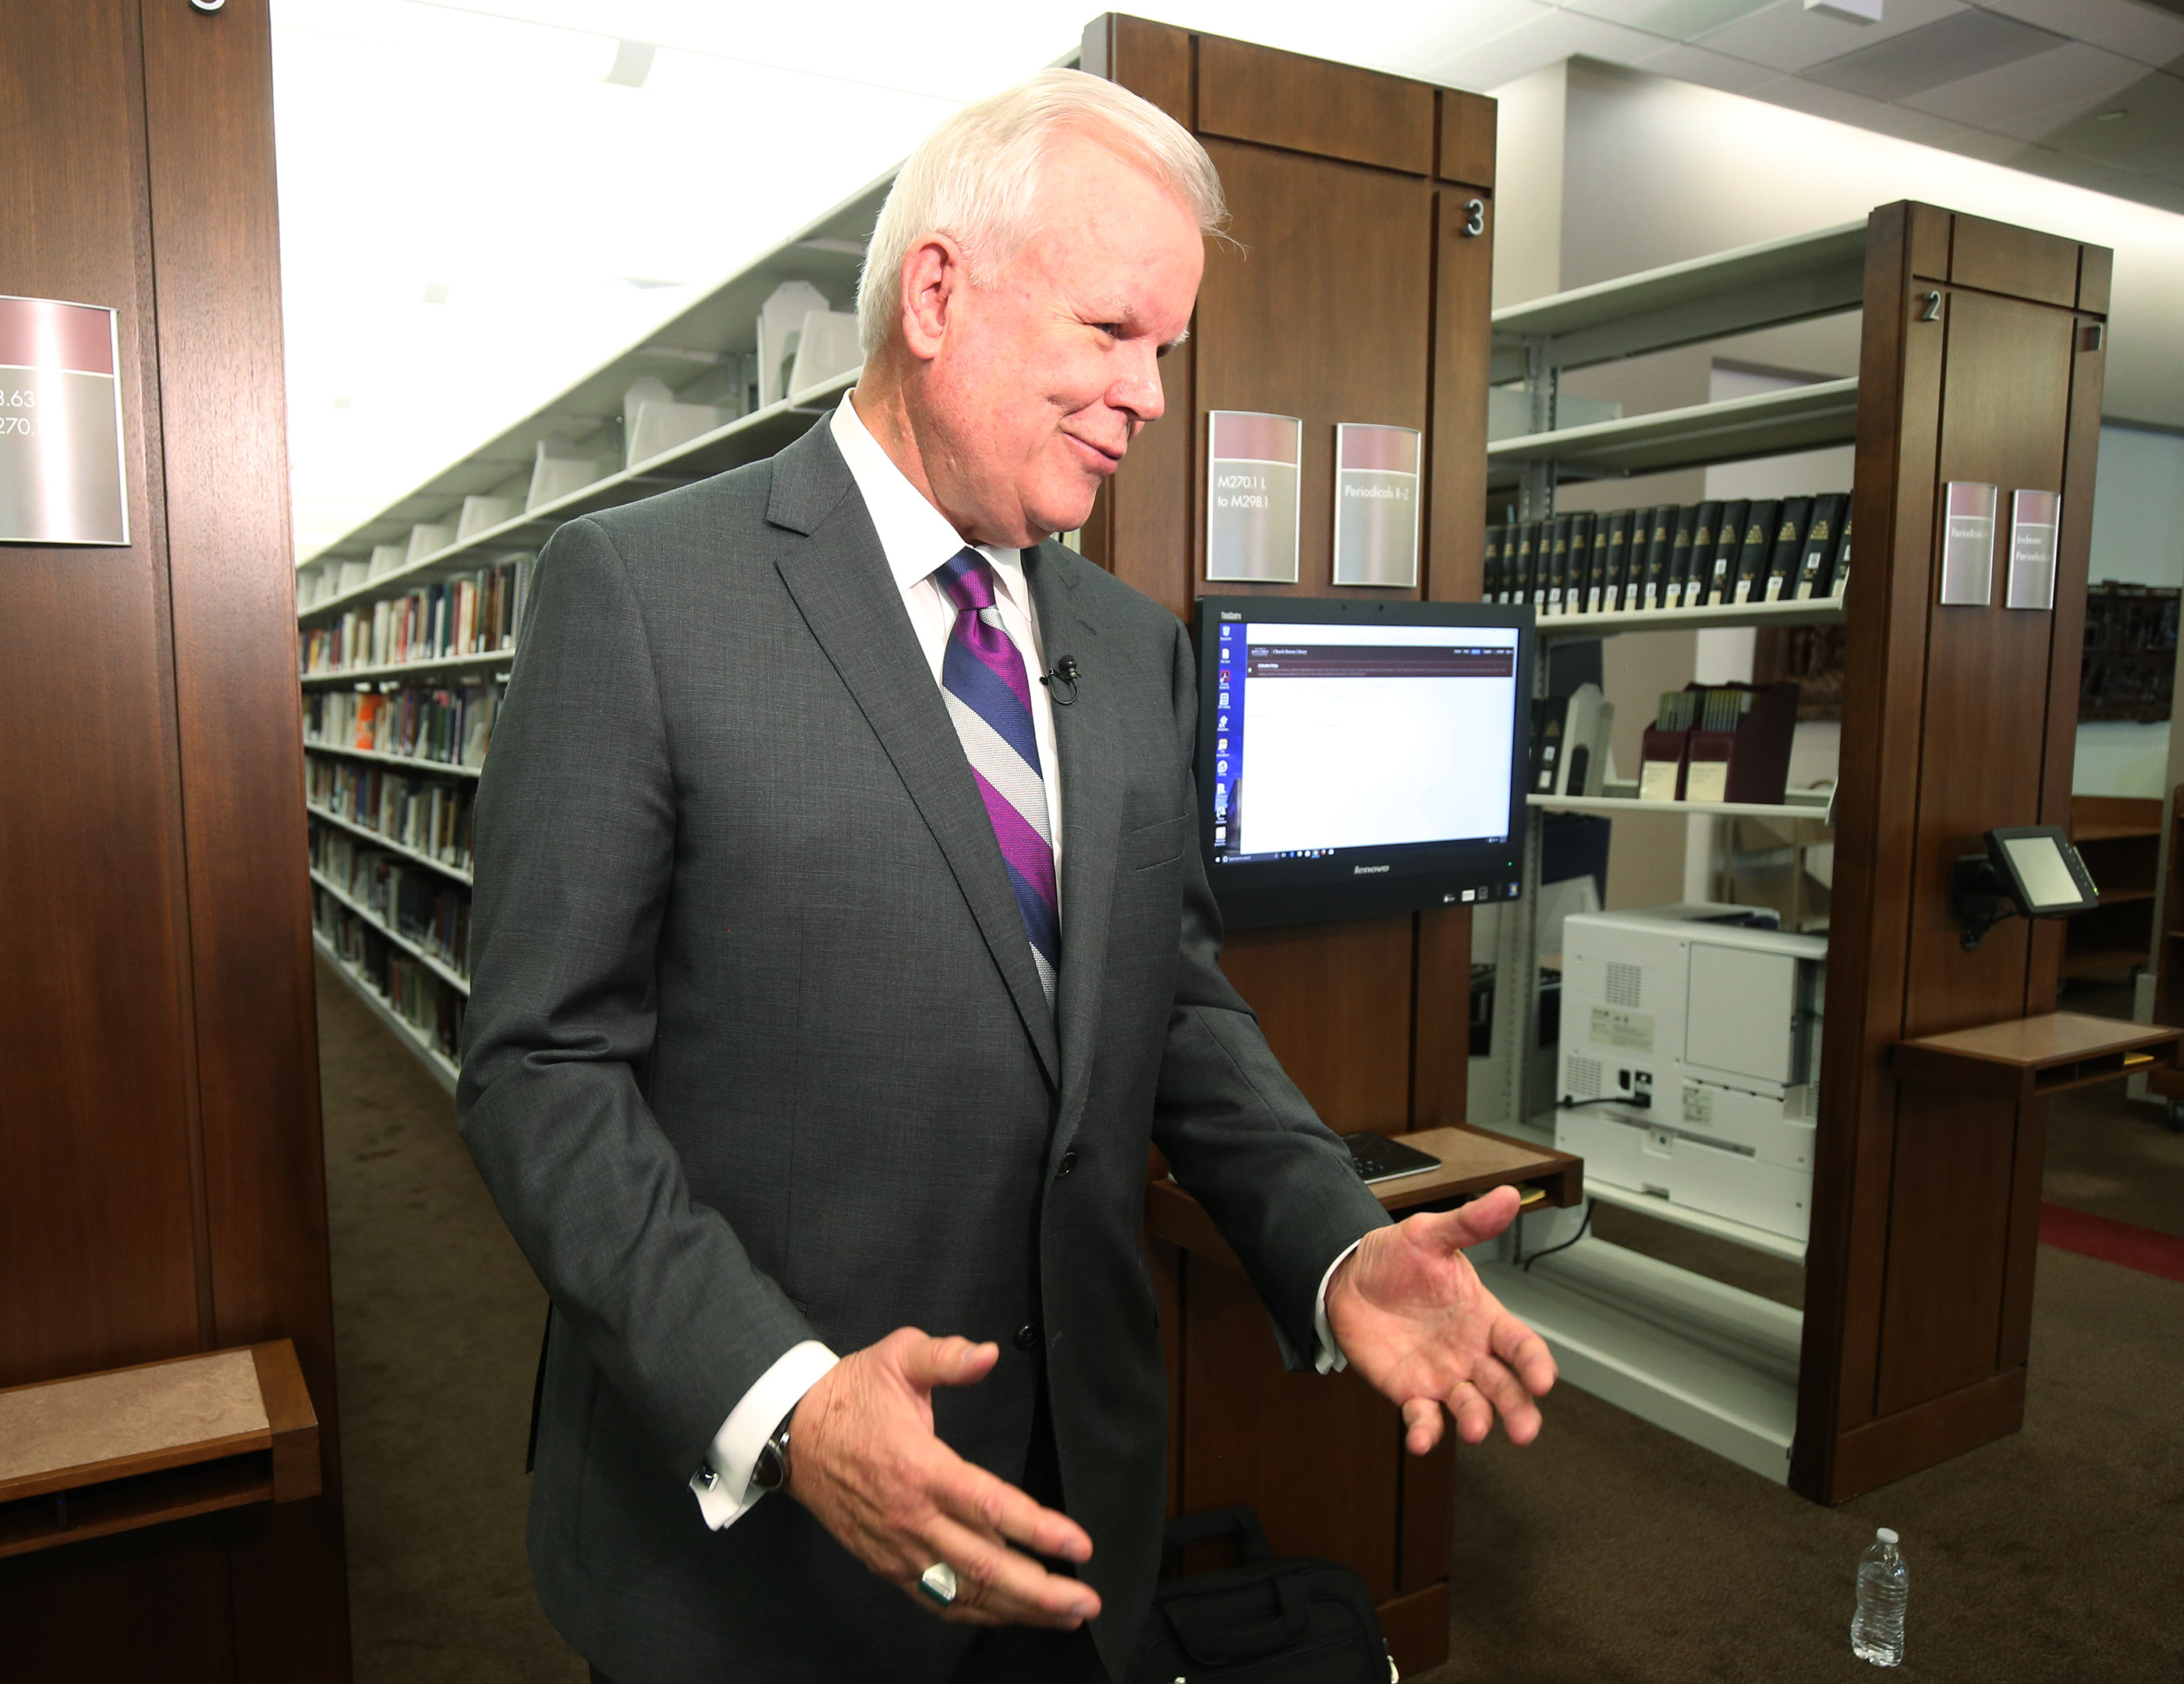 """Elder Steven E. Snow, General Authority Seventy and Church Historian, speaks to media during a press conference announcing the book, """"Saints: The Story of the Church of Jesus Christ in the Latter Days,"""" in Salt Lake City on Tuesday, Sept. 4, 2018."""